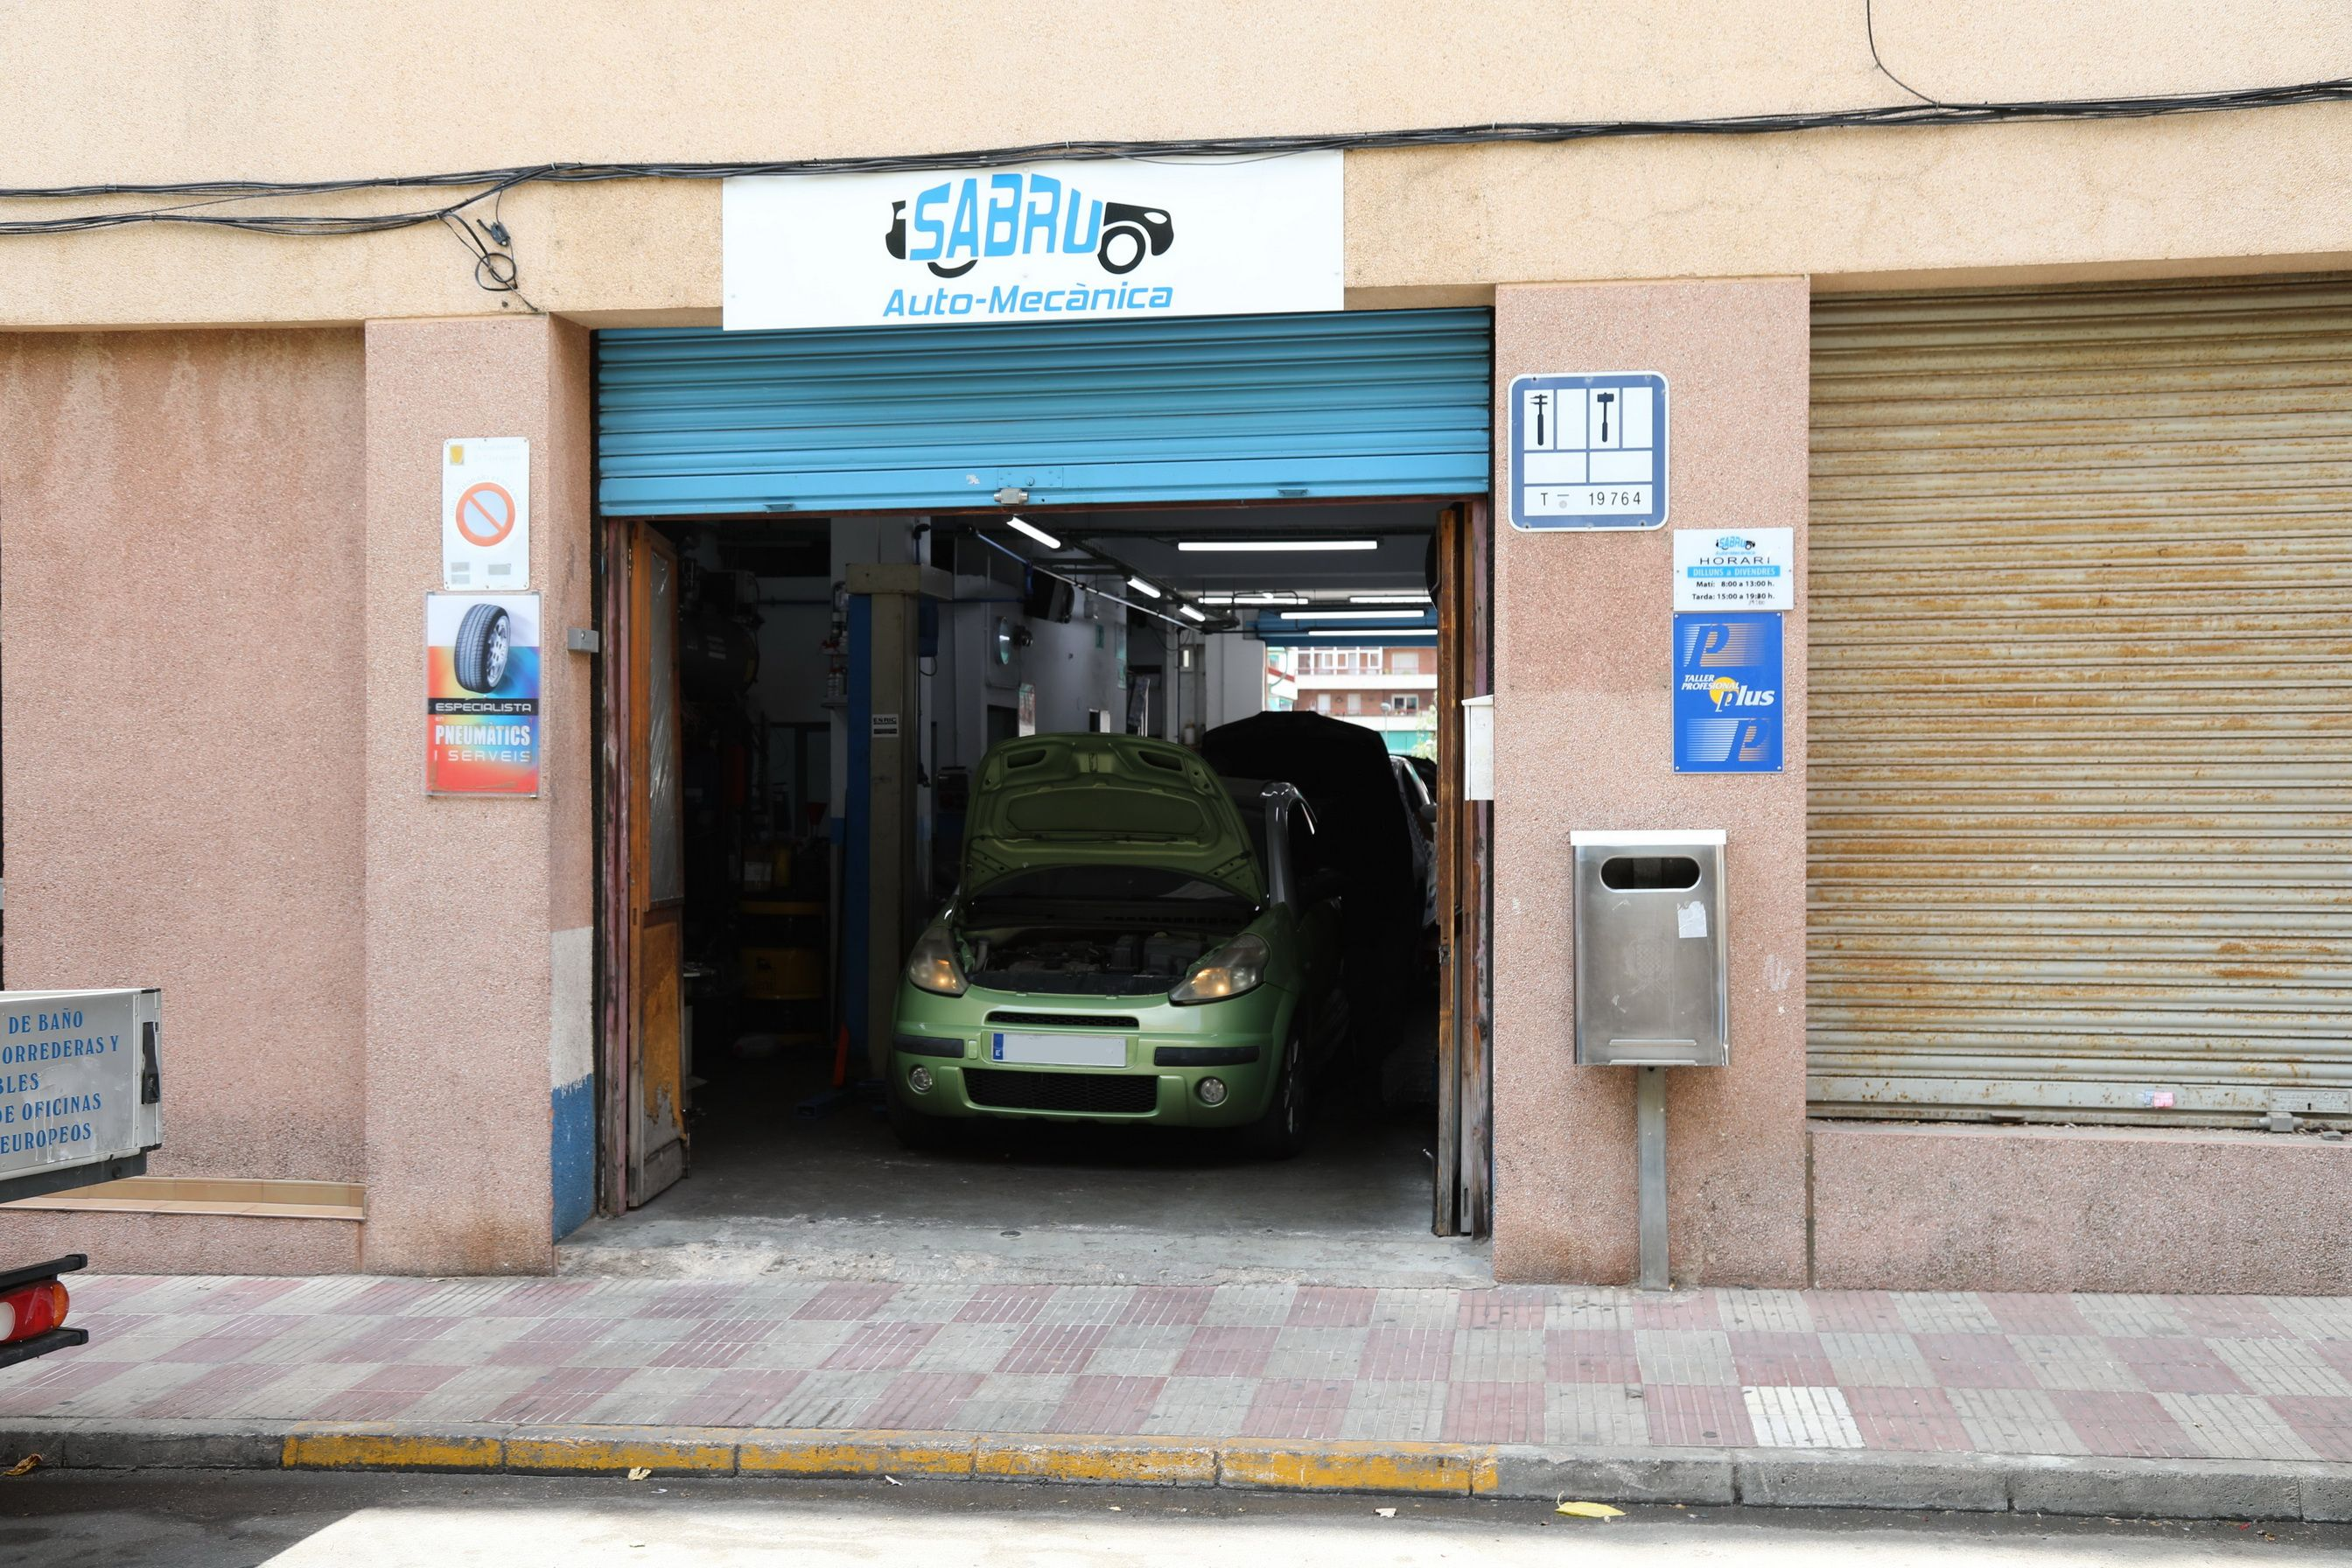 Exterior local Automecánica Sabru